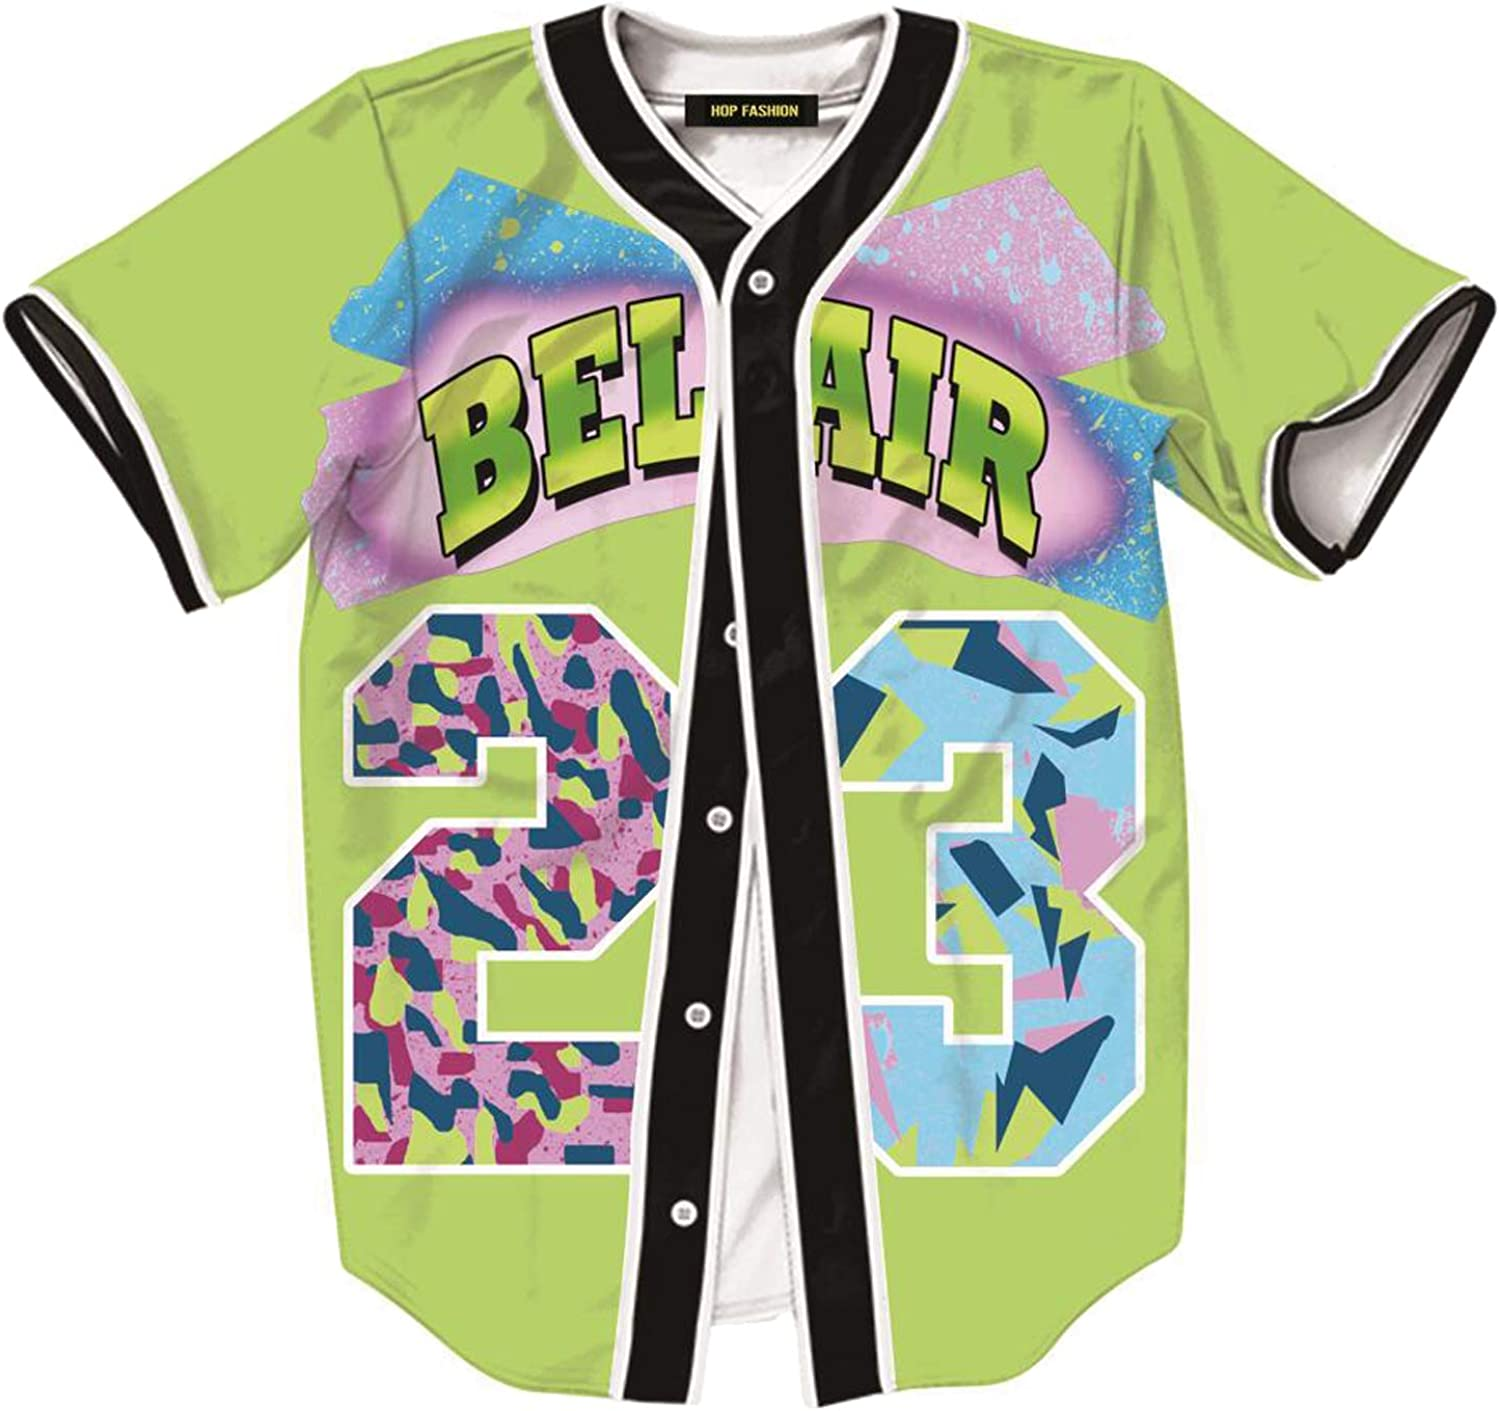 HOP FASHION Unisex 90s Theme Party Hip Hop Bel Air Baseball Jersey Short Sleeve Tops for Birthday Party